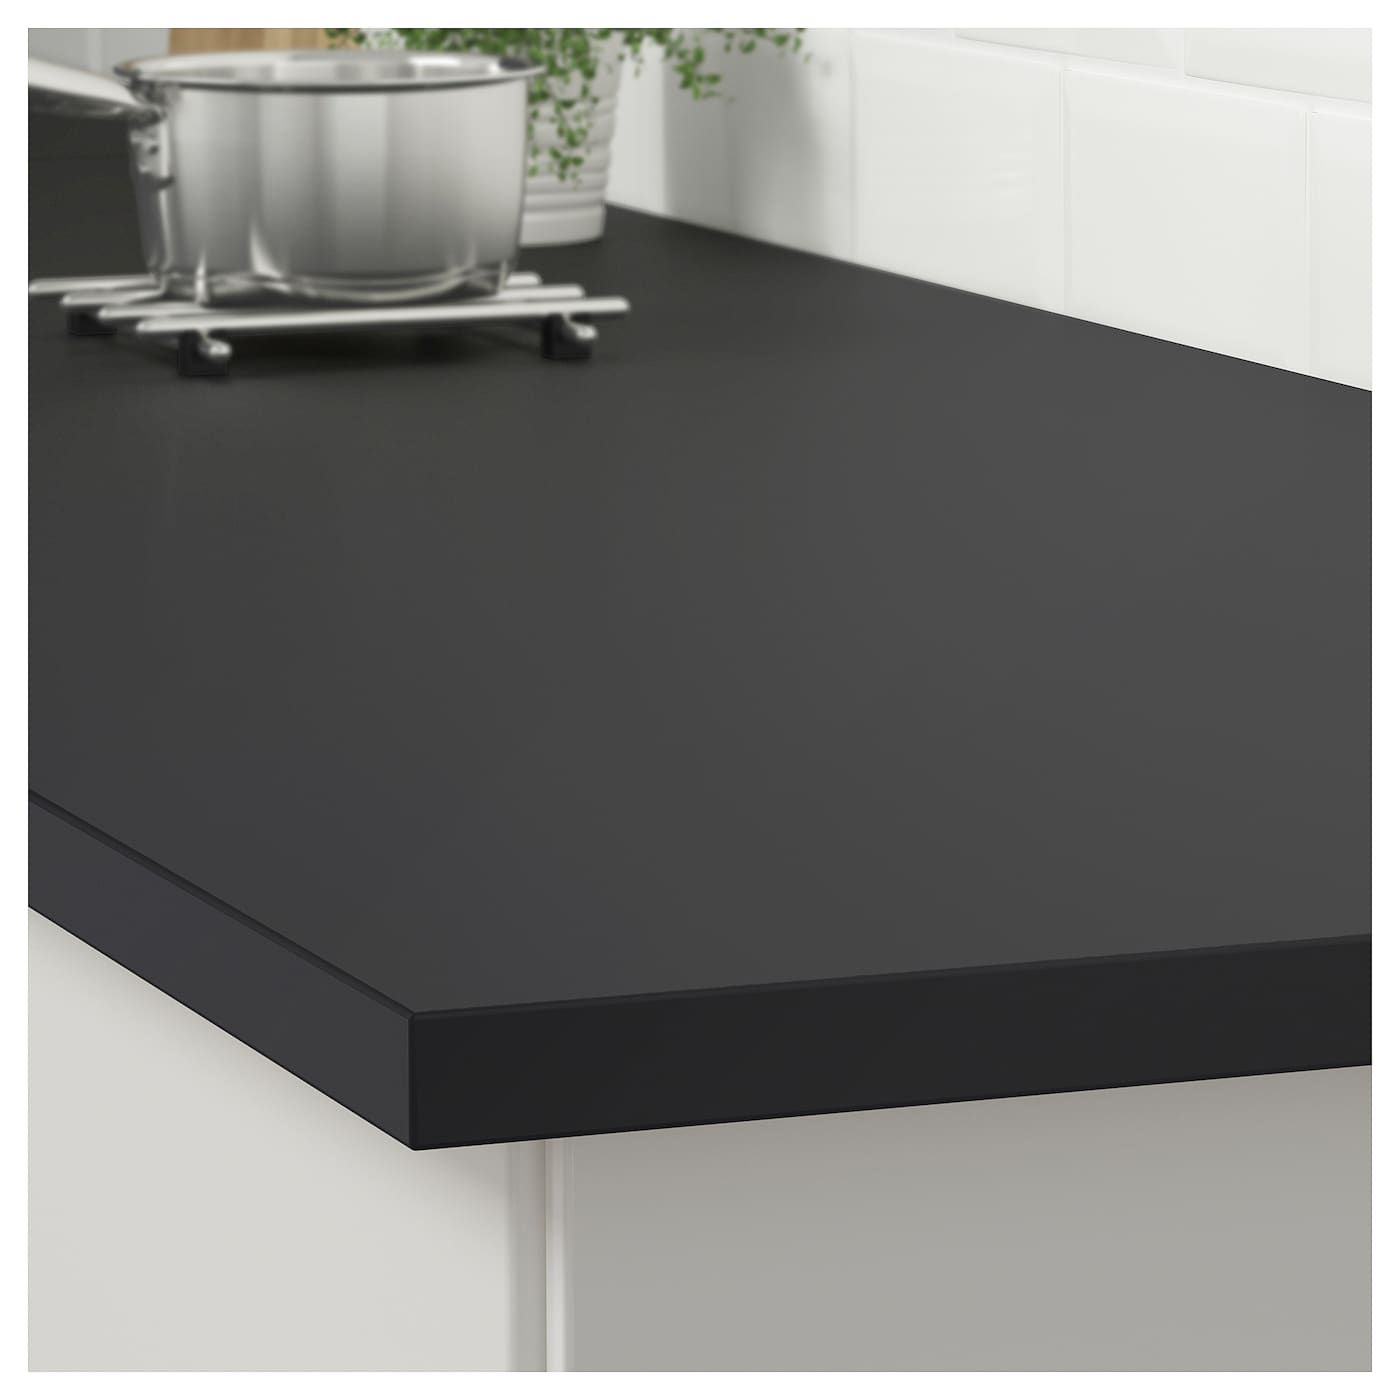 Ekbacken Countertop Matte Anthracite Laminate 98x1 1 8 Ikea